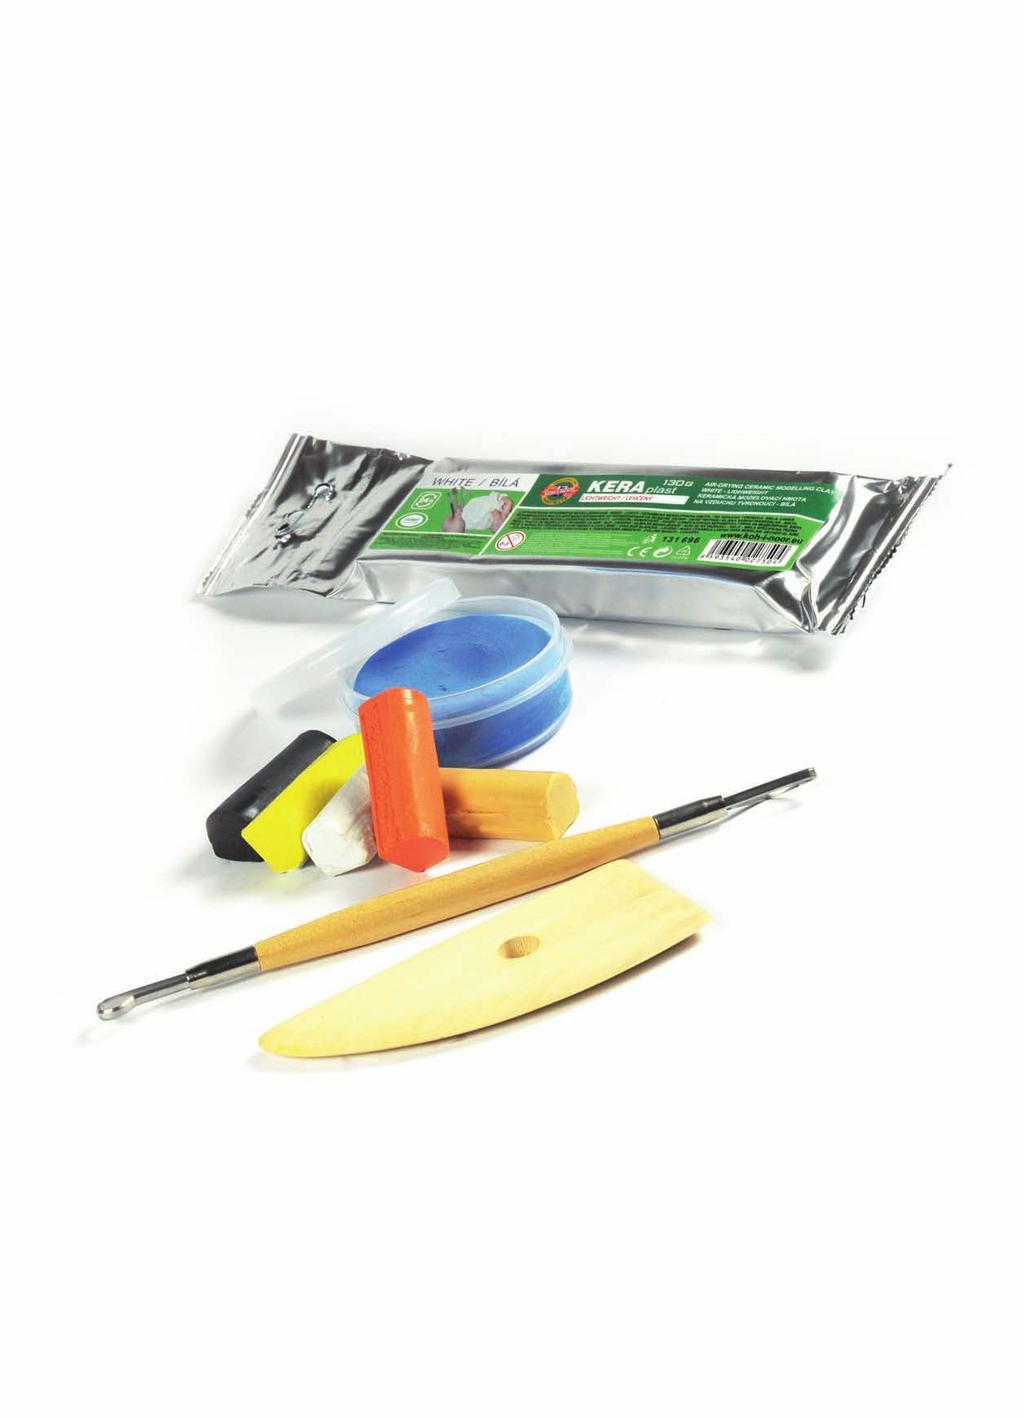 Modelling clays, modelling tools and decorative lacquers Modelliermassen, Spachteln und